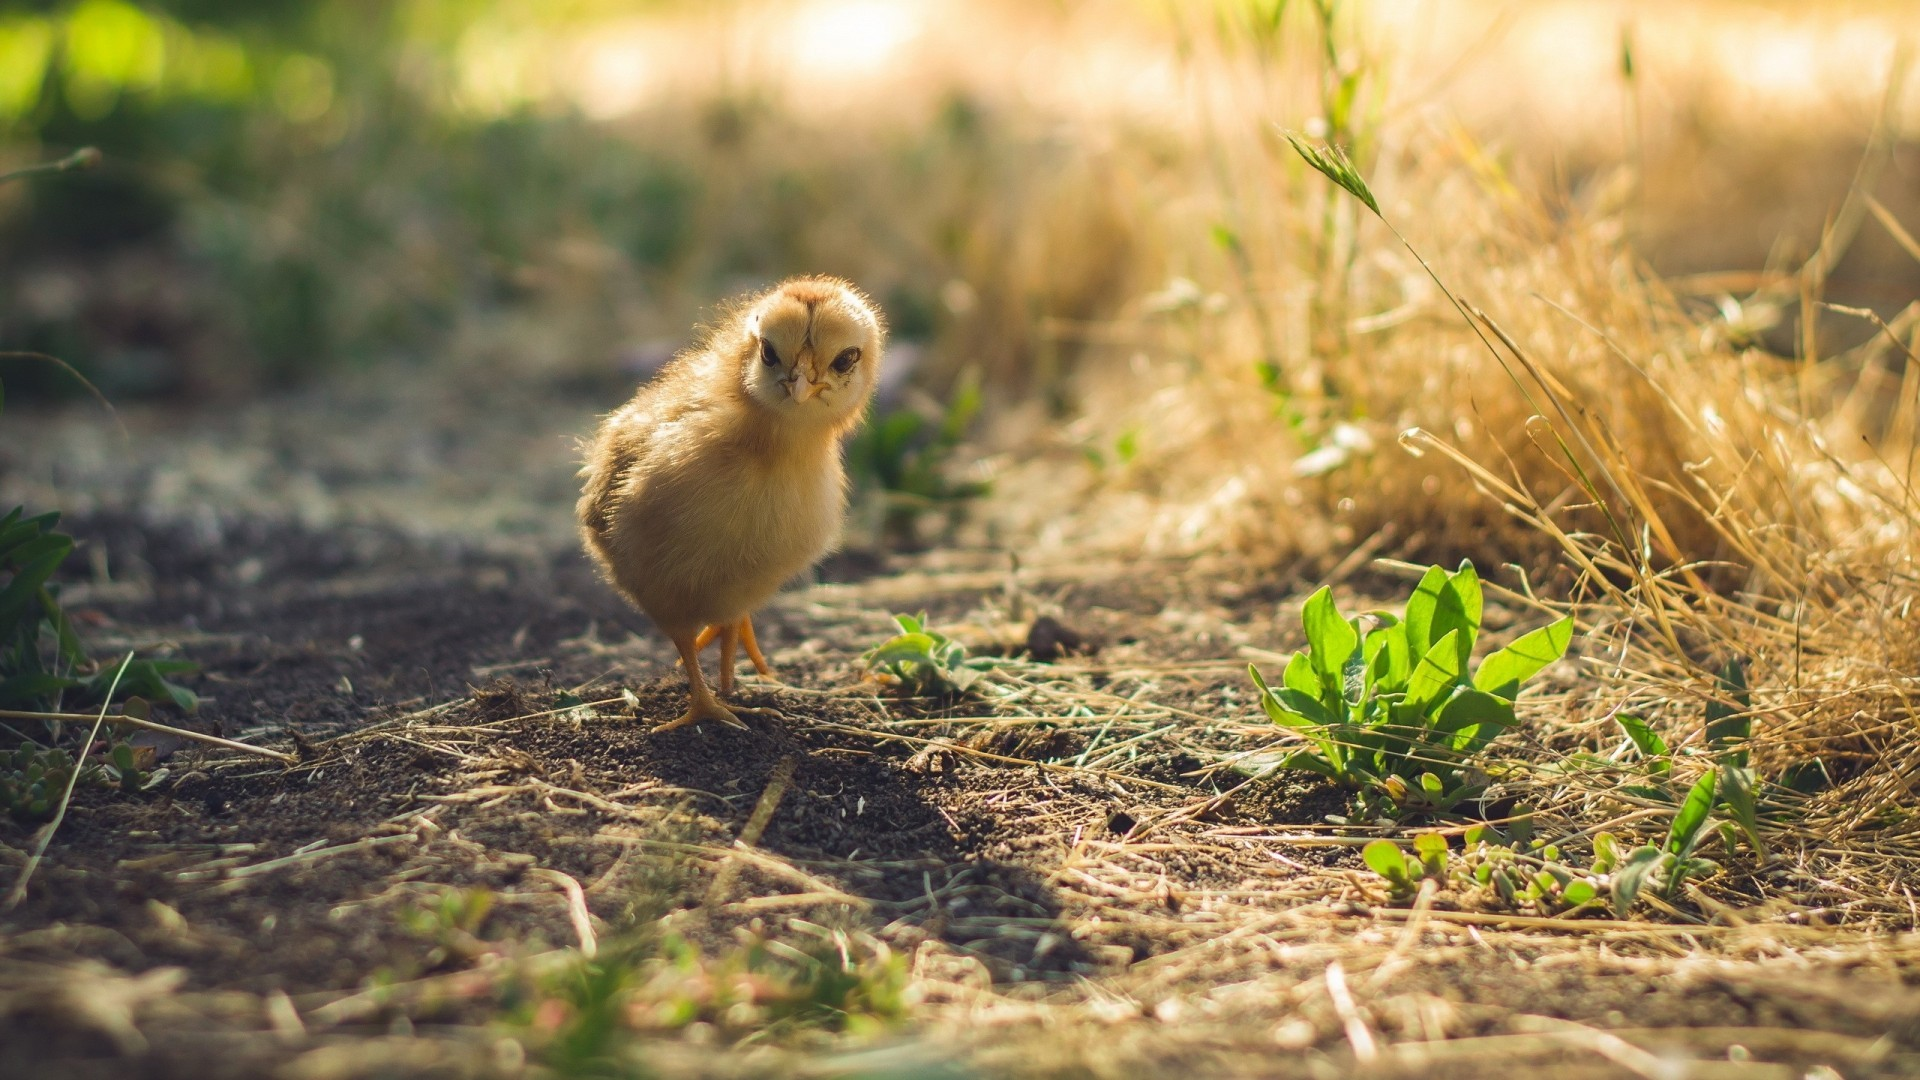 Download 1920x1080 Chick, Walking, Plants, Baby Wallpapers